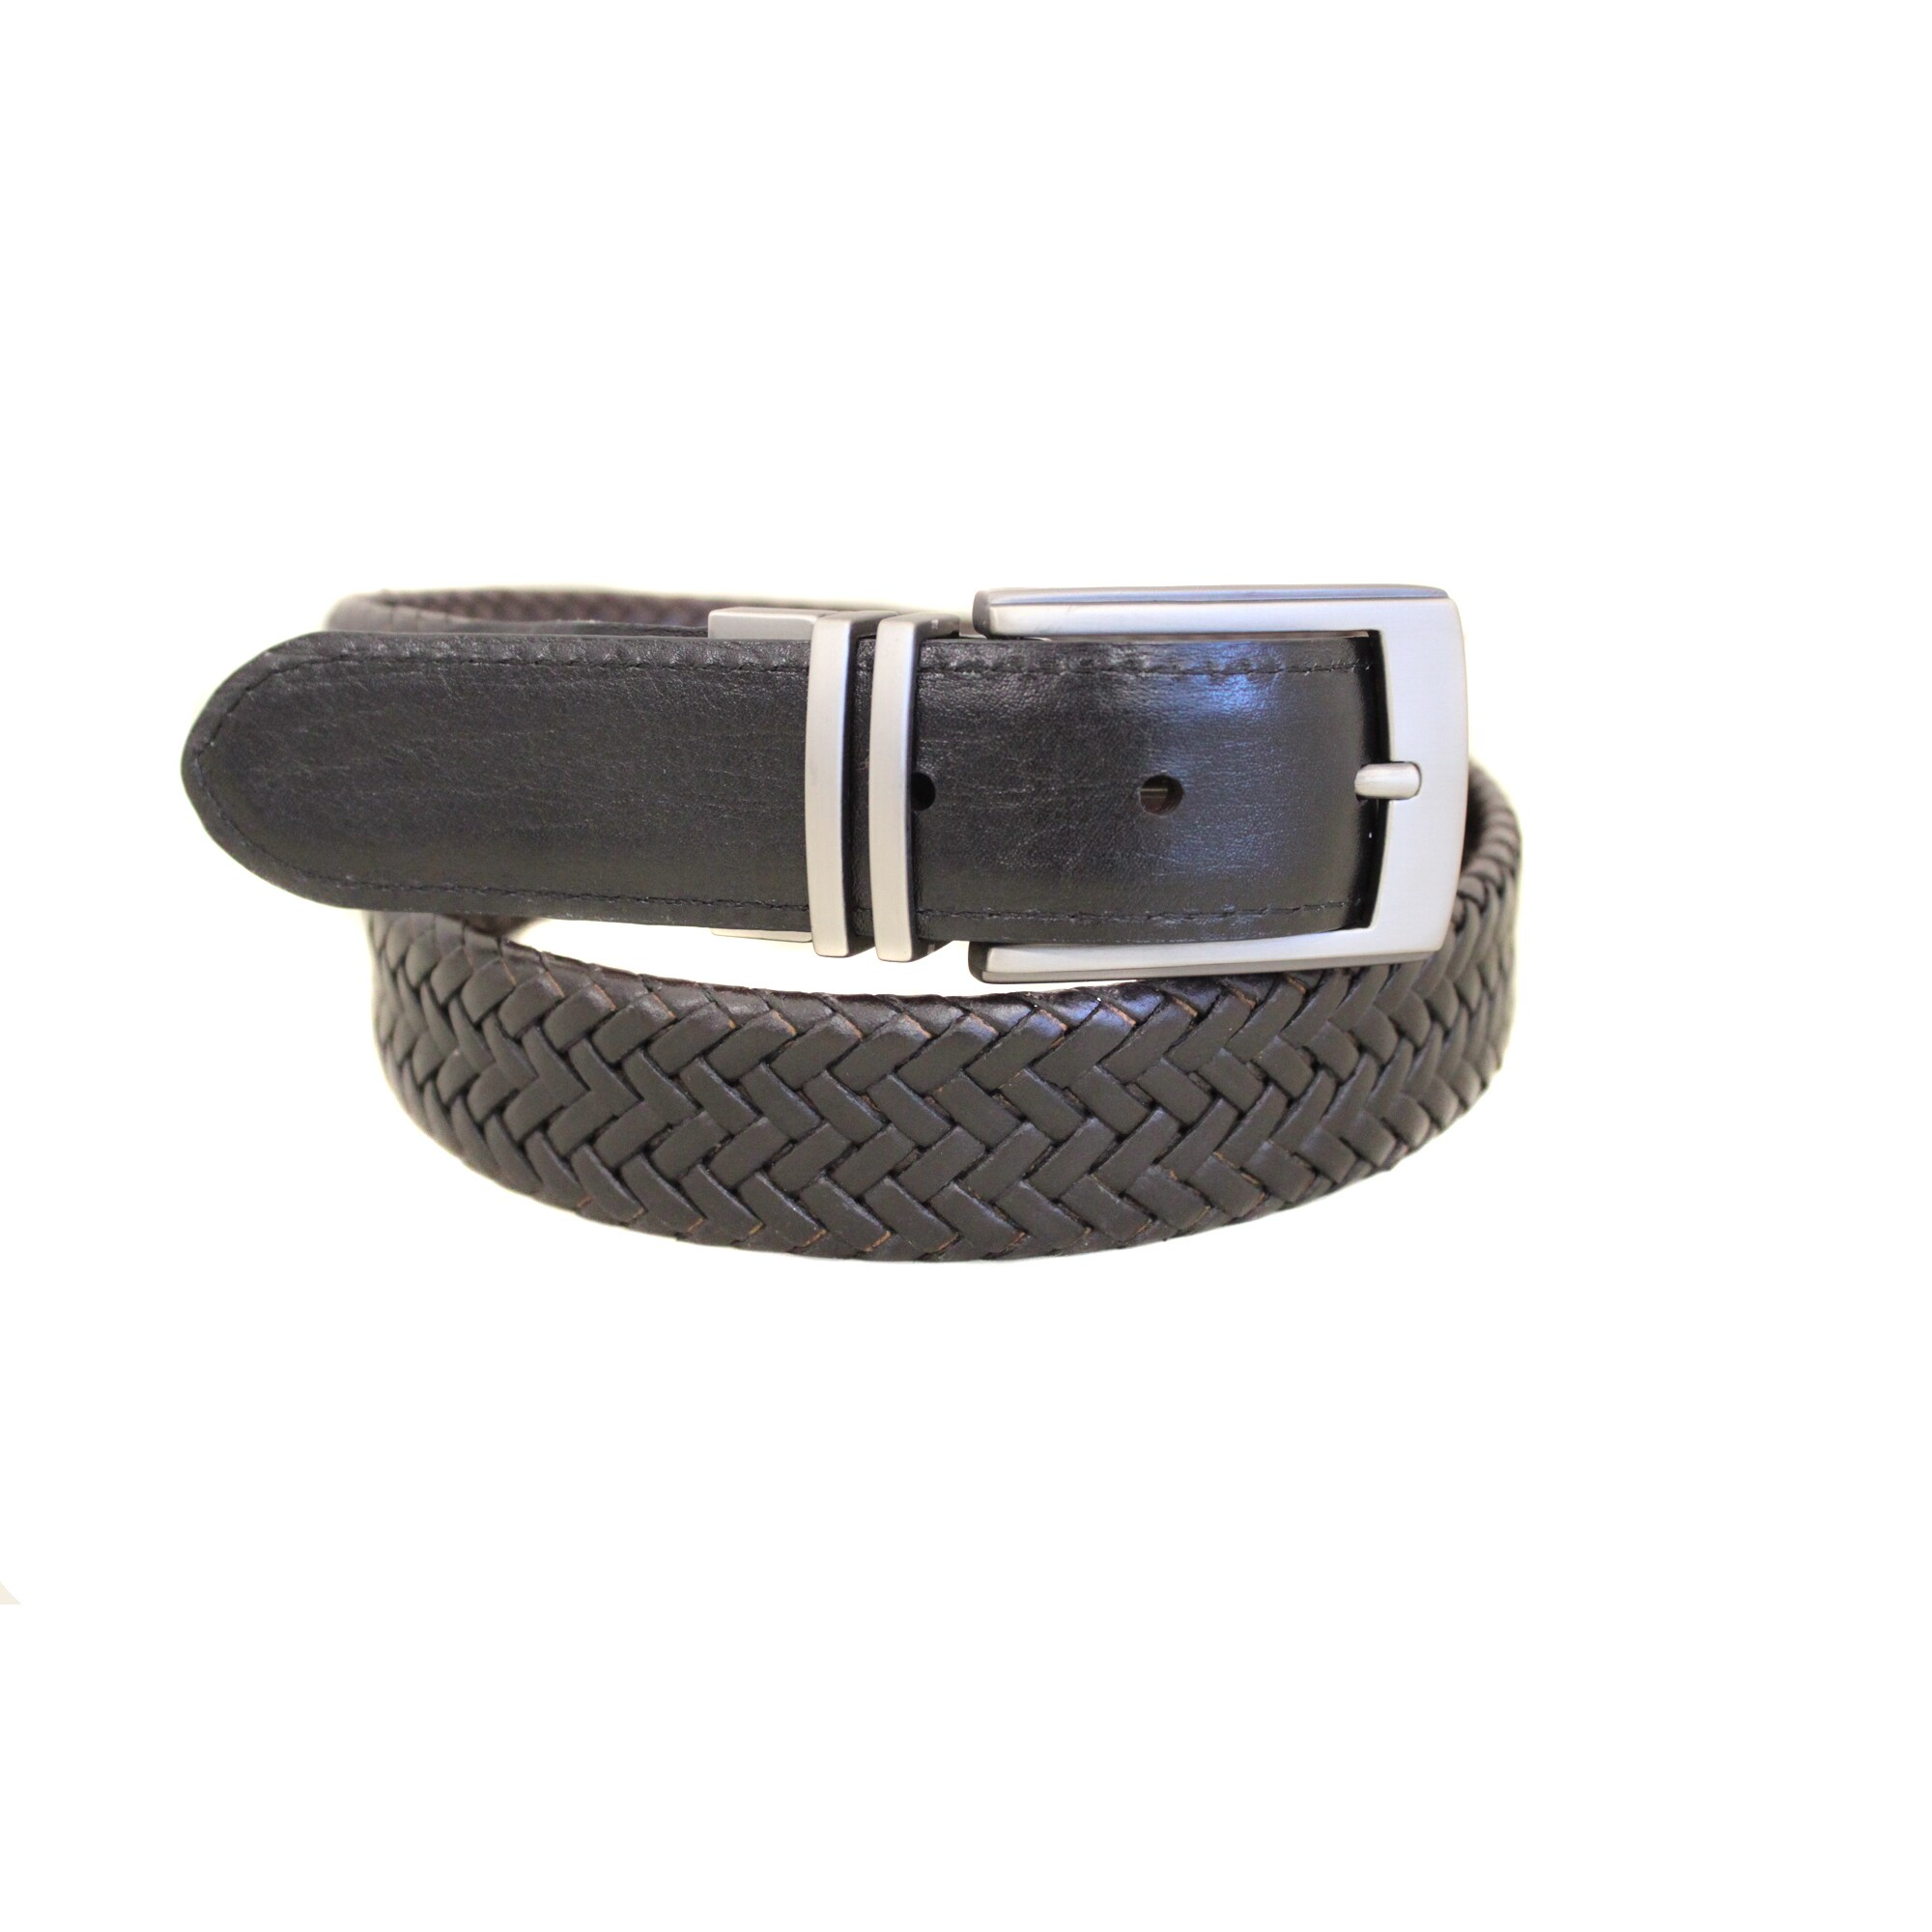 Entourage 'Good Vibe' Reversible Braided Leather Belt